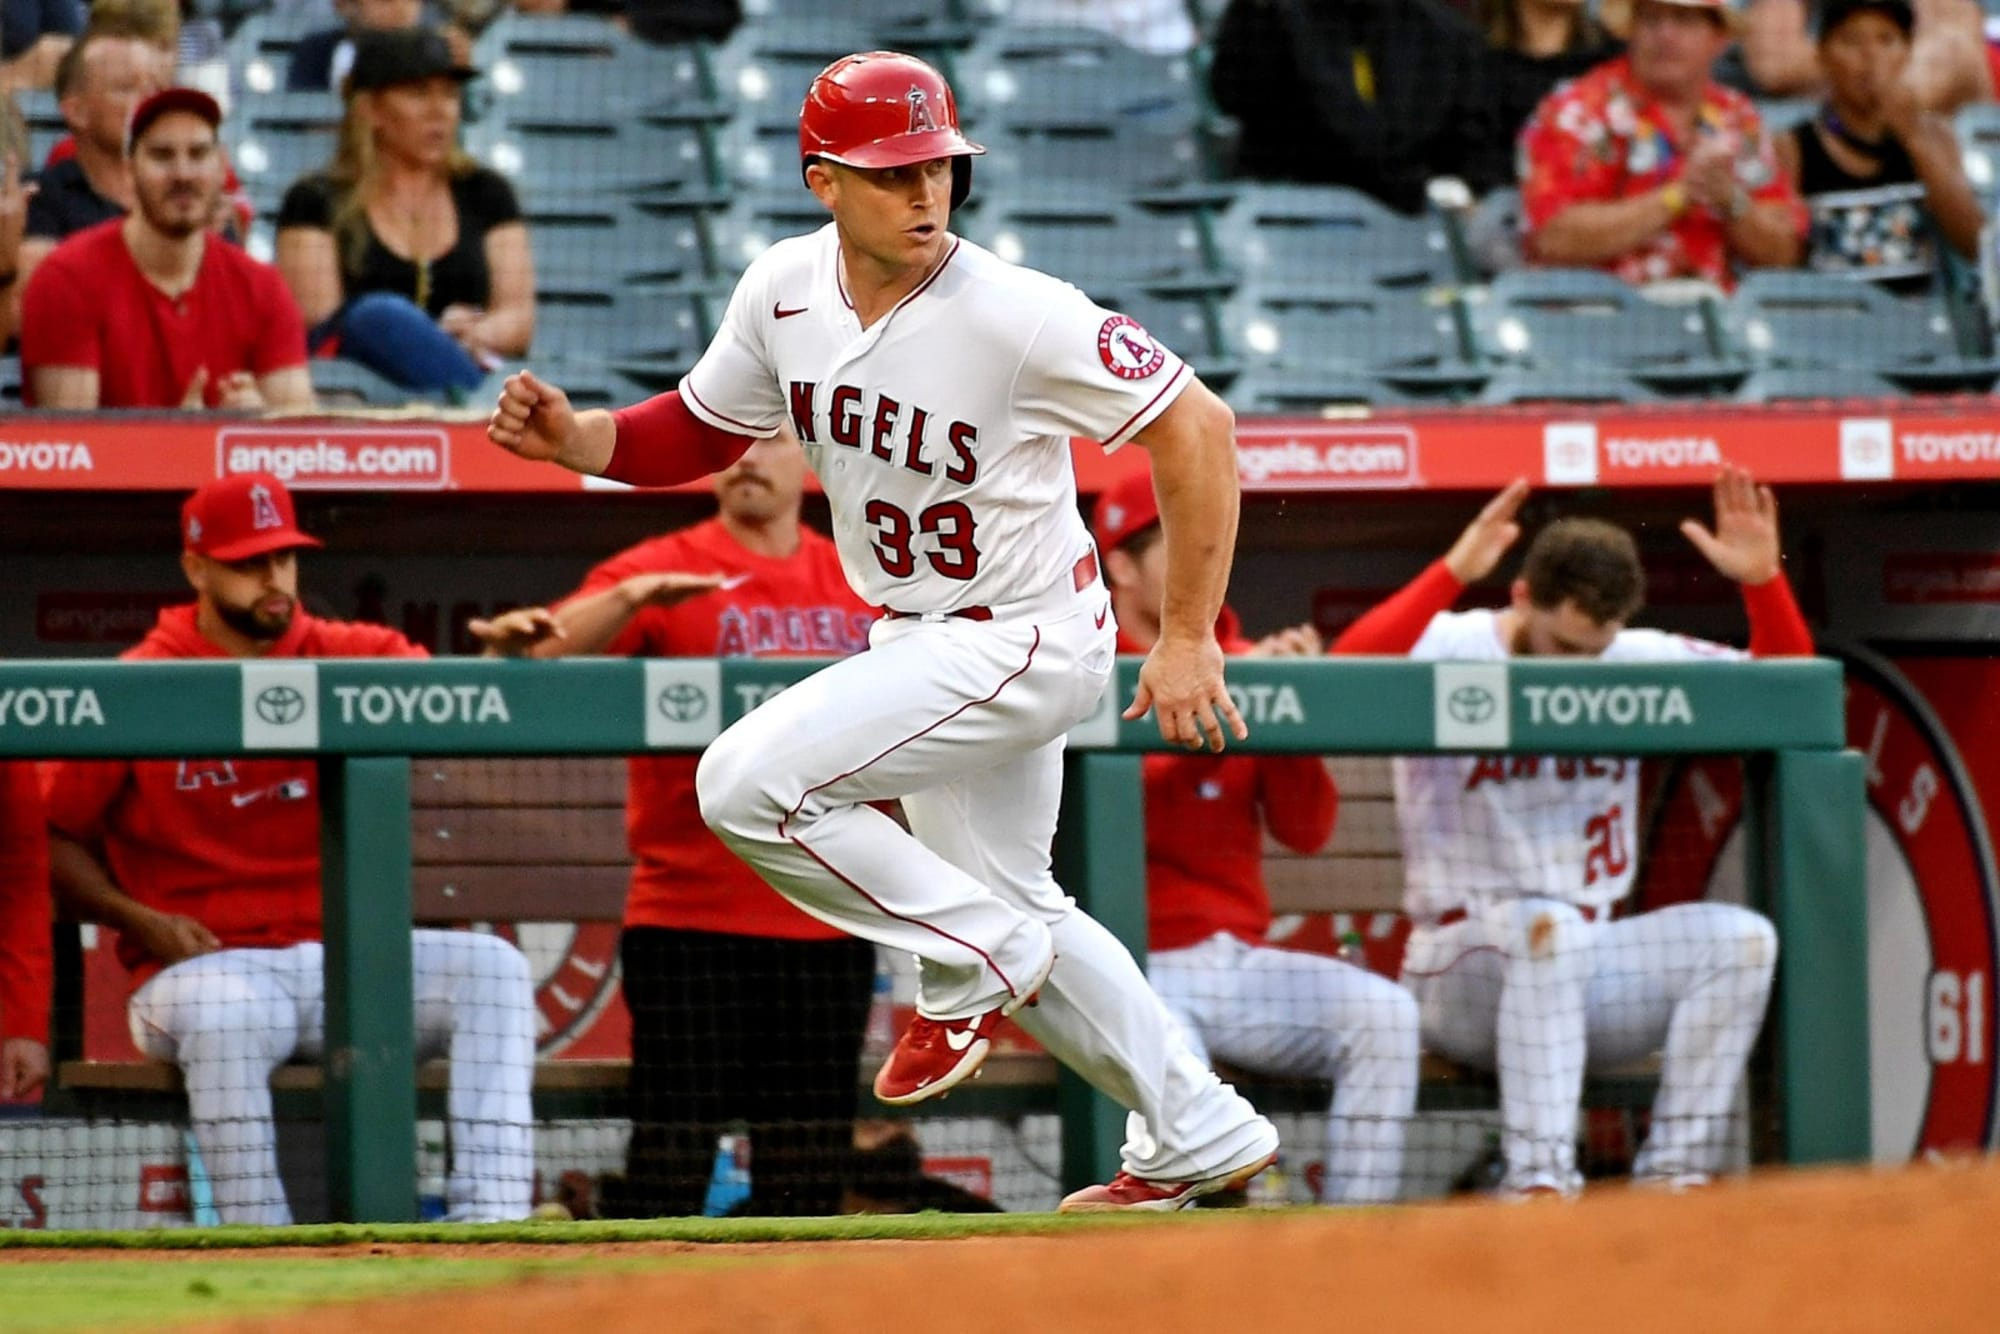 LA Angels: Healthy competition is improving both catchers